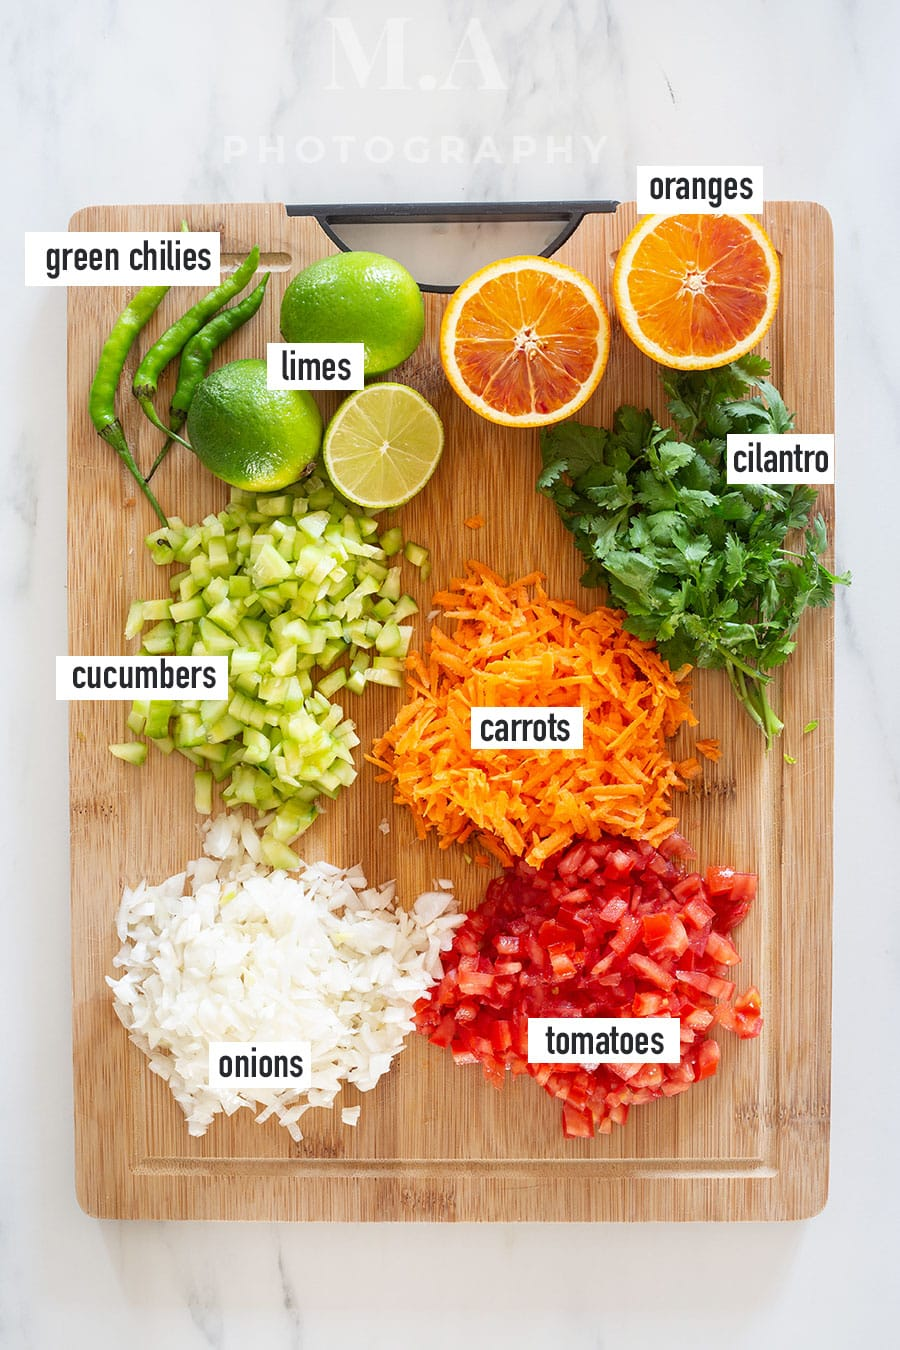 Vegetables diced and chopped on a wooden cutting board.